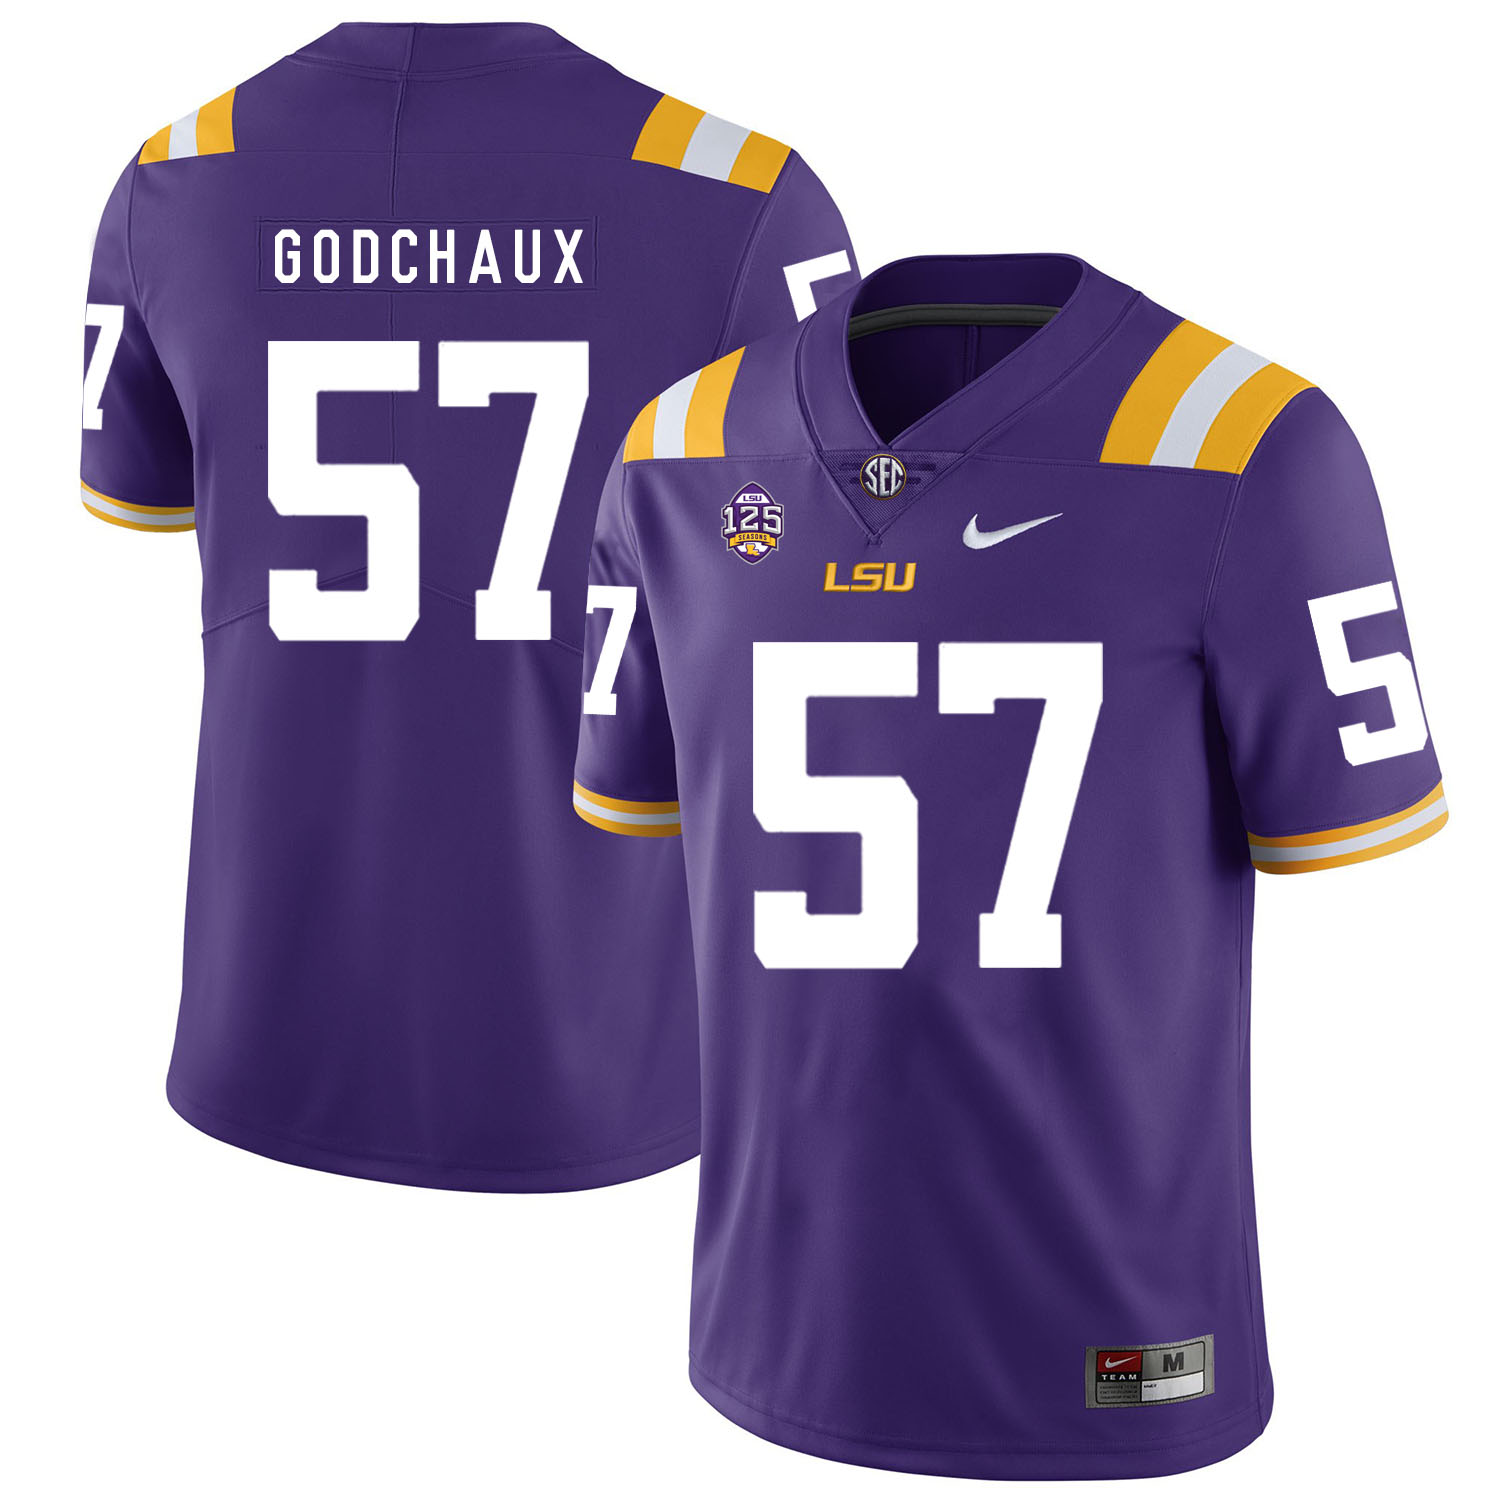 LSU Tigers 57 Davon Godchaux Purple Nike College Football Jersey